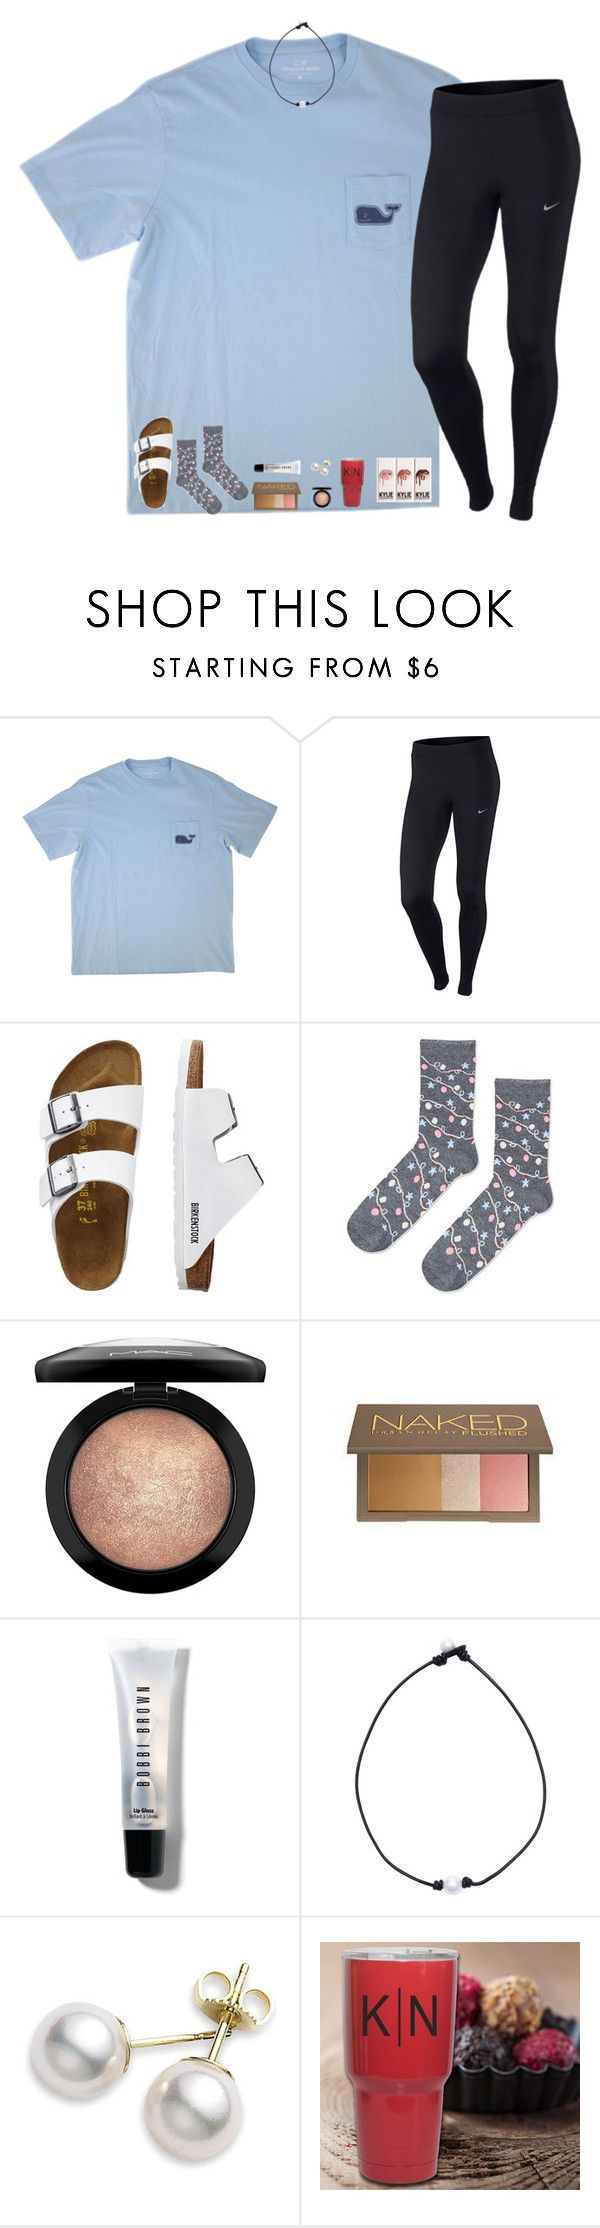 """""""Christmas contest"""" by mmprep ❤️ liked on Polyvore featuring Vineyard Vines, NIKE, TravelSmith, Topshop, MAC Cosmetics, Urban Decay, Bobbi Brown Cosmetics, Mikimoto and hopeschristmascontest2016"""